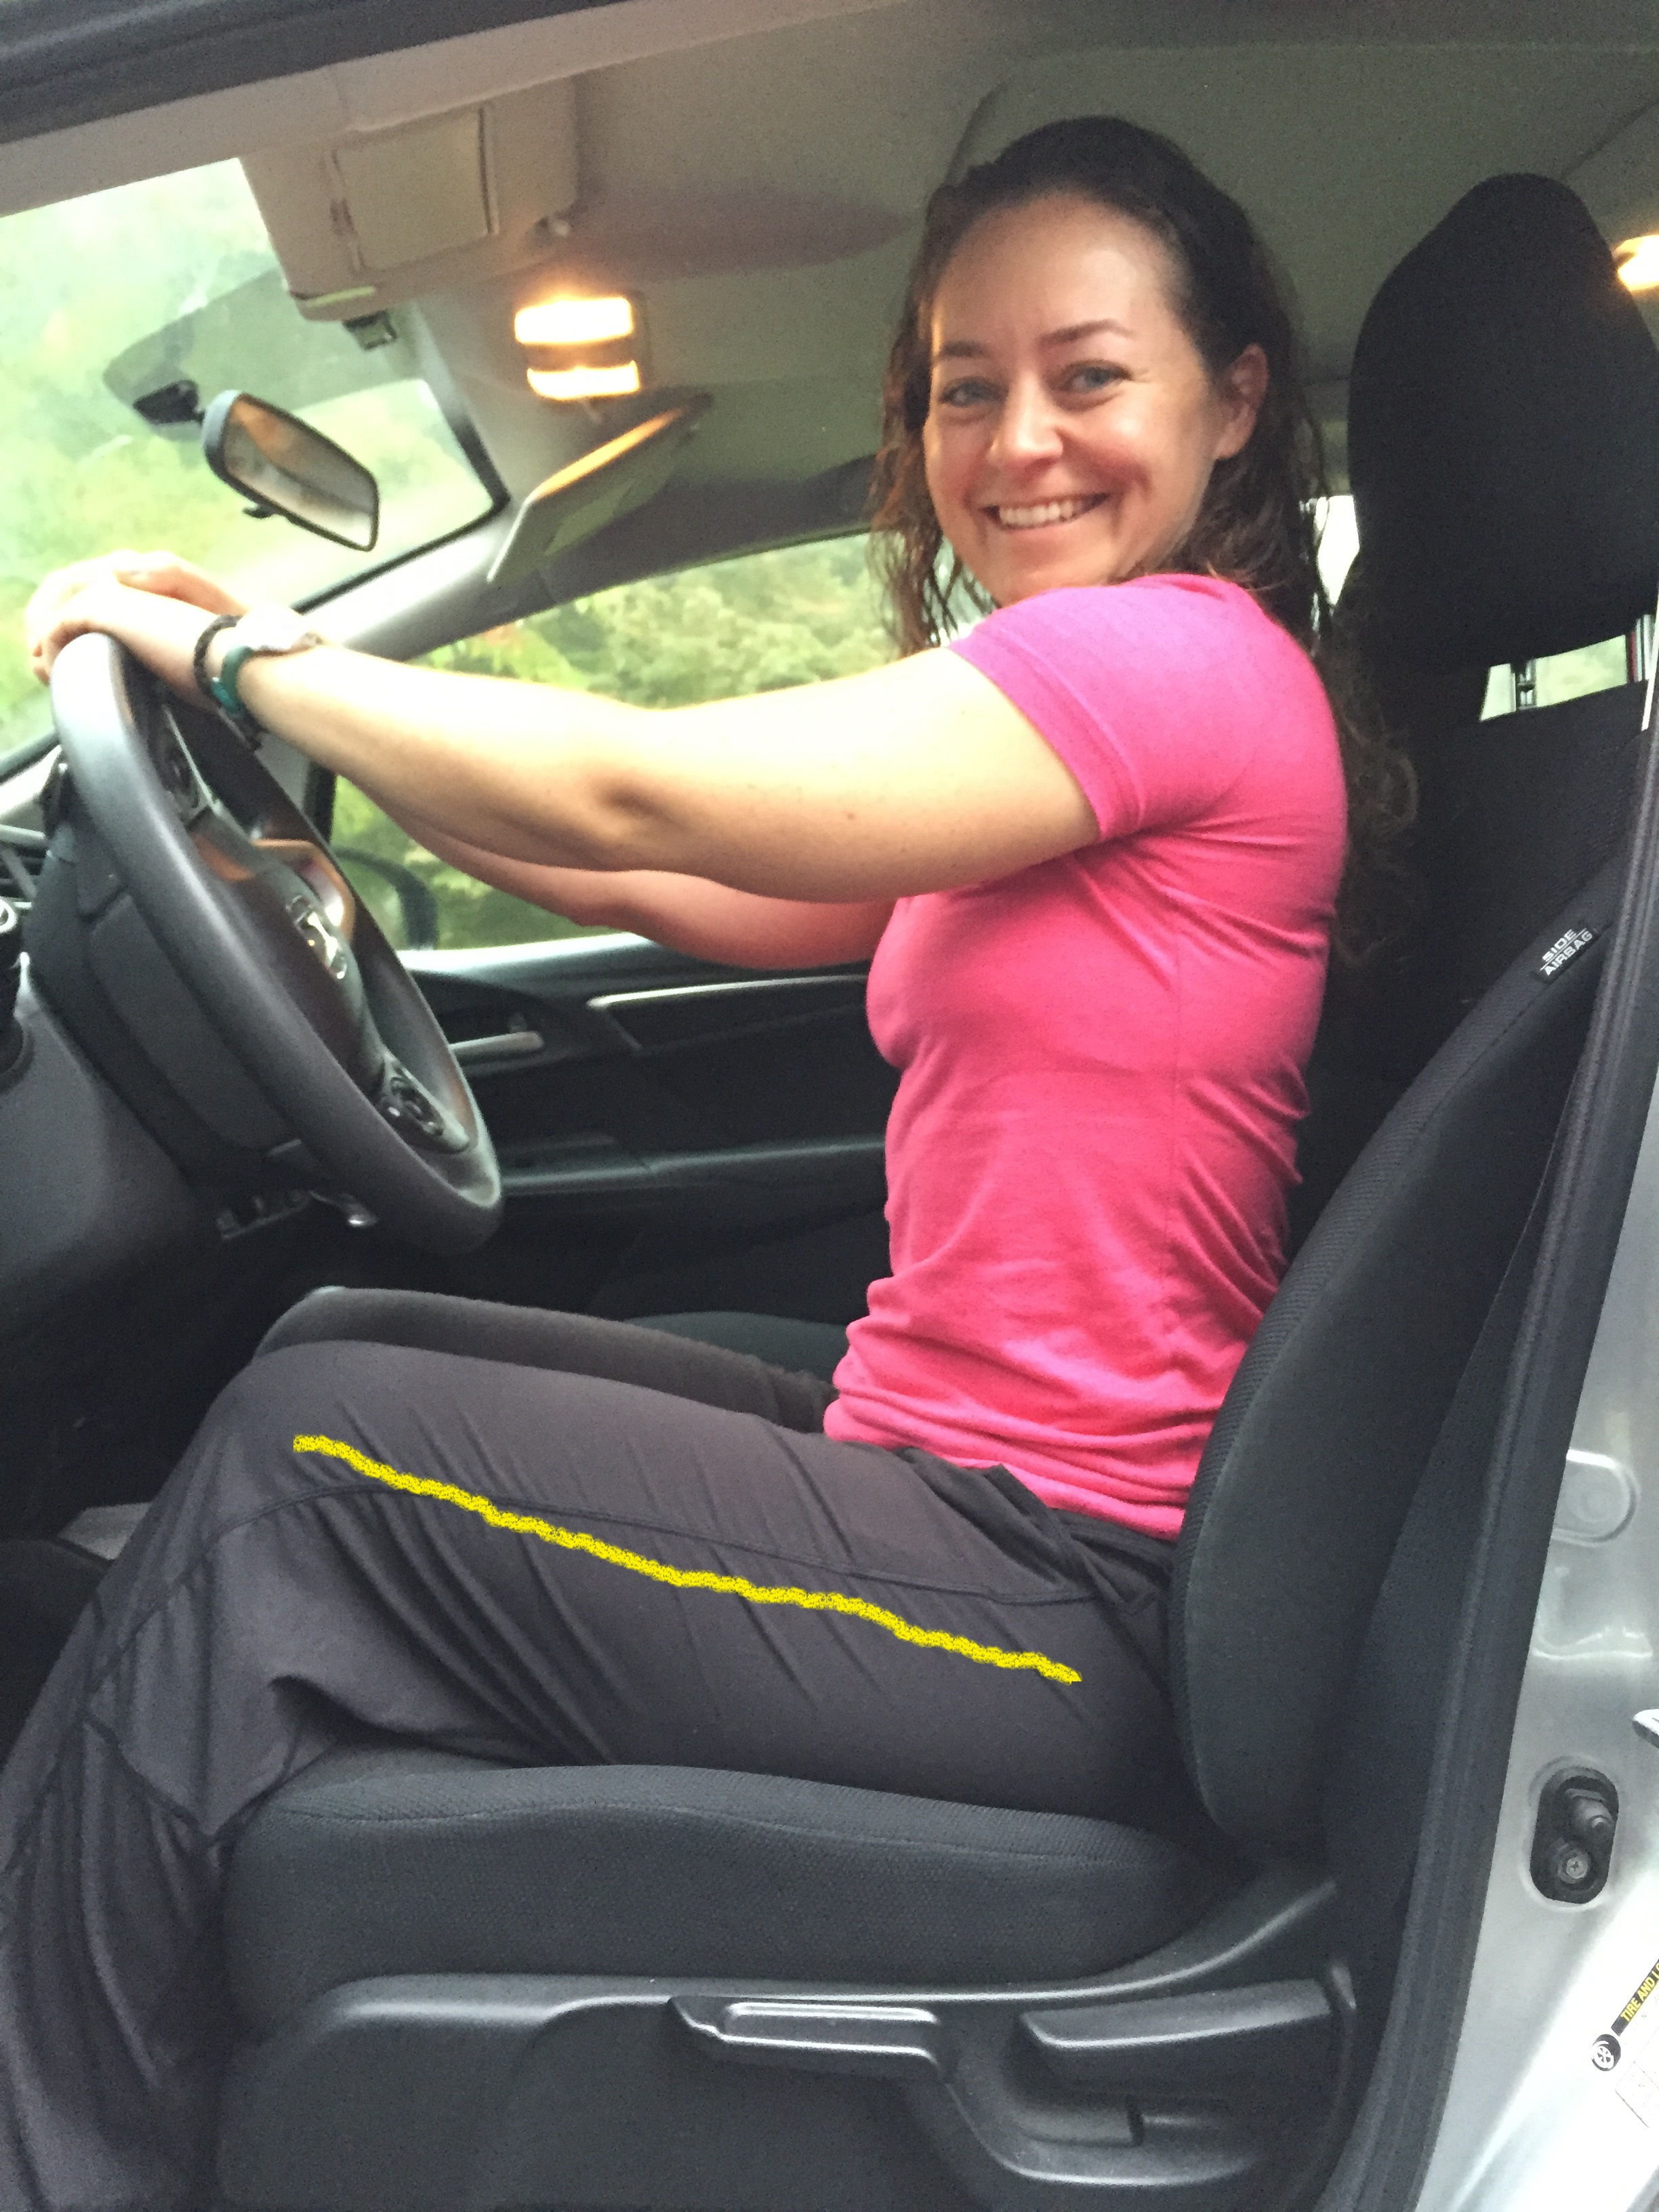 Bucket Seats The Bane Of My Existence Personal Euphoria Pilates Fitness Classes In Ct